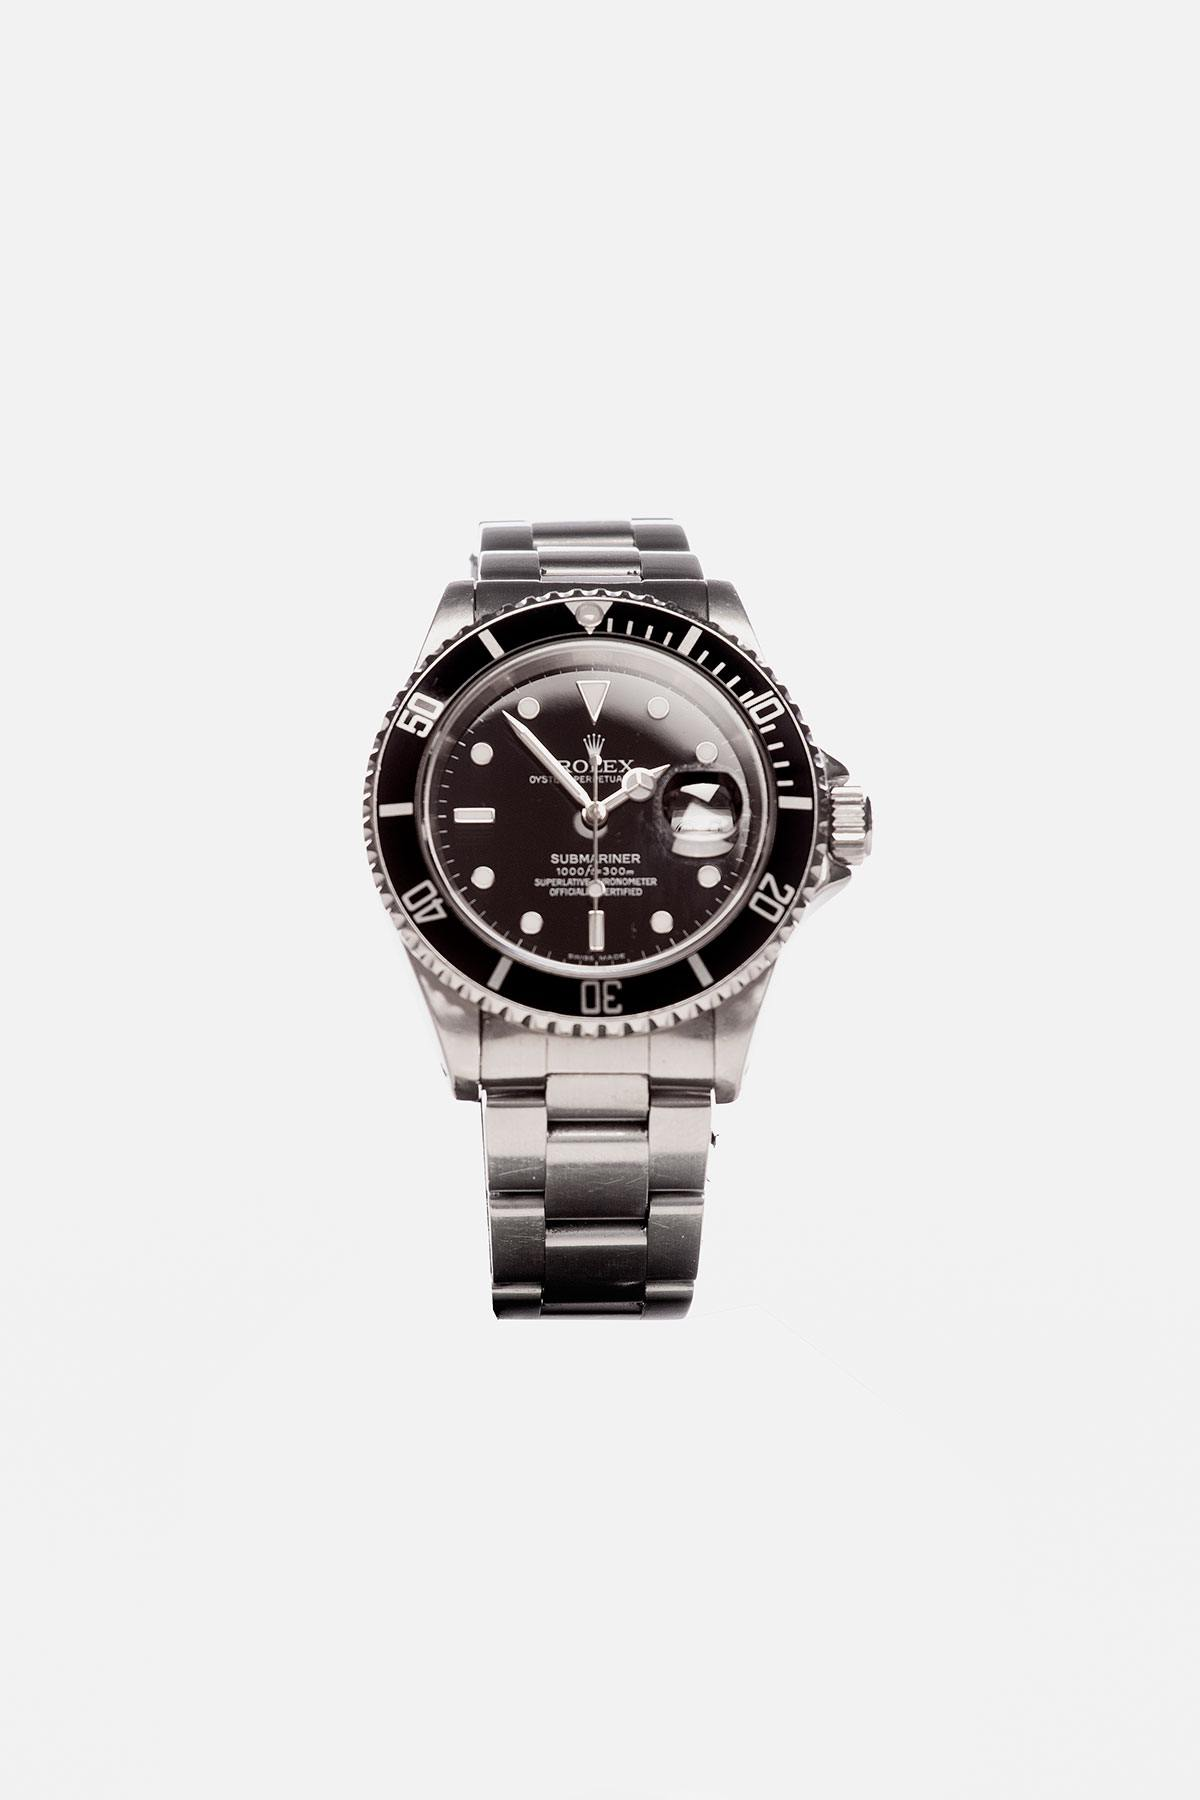 SUBMARINER DATE WATCH